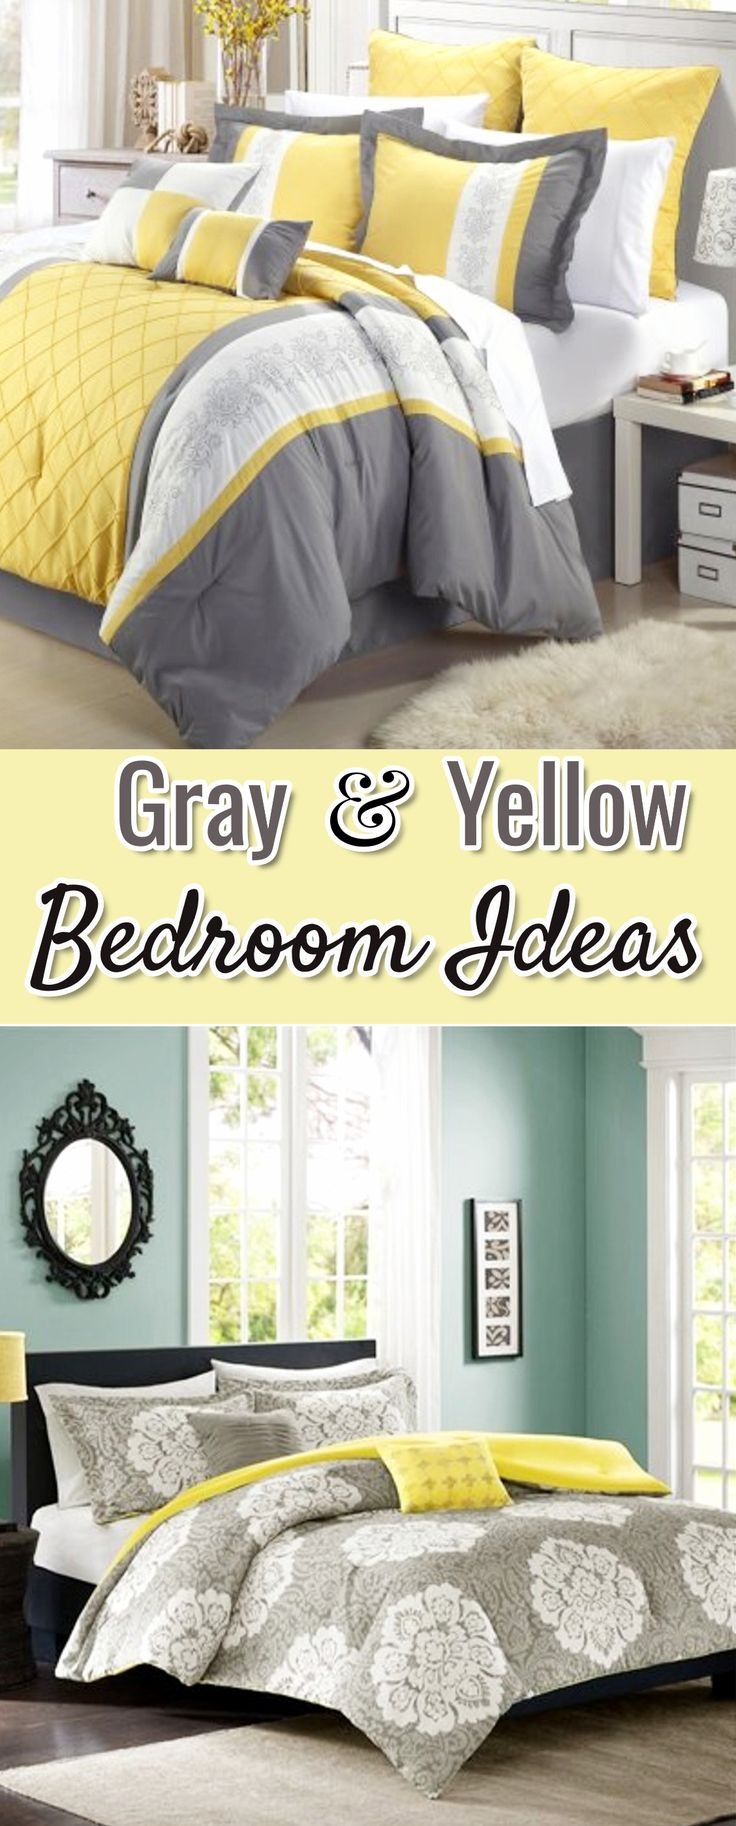 Best 25 Yellow Bedding Ideas On Pinterest Yellow Comforter Yellow Bedrooms And Yellow Room Decor